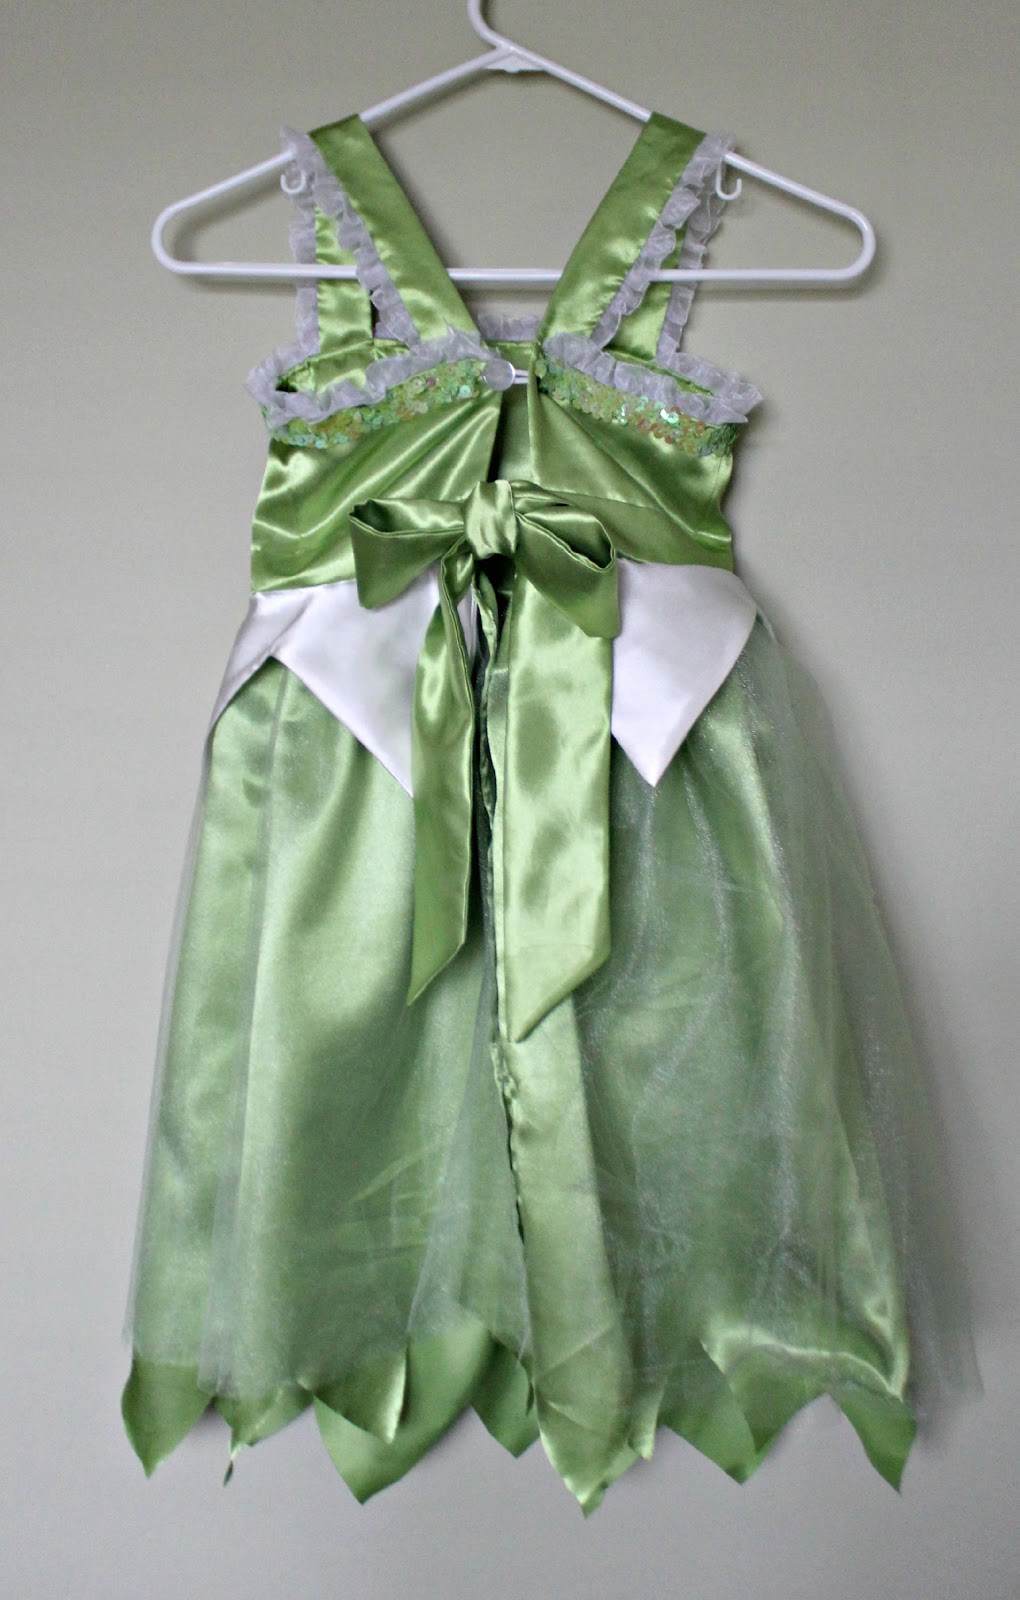 Risc Handmade Homemade Princess Tiana Costume